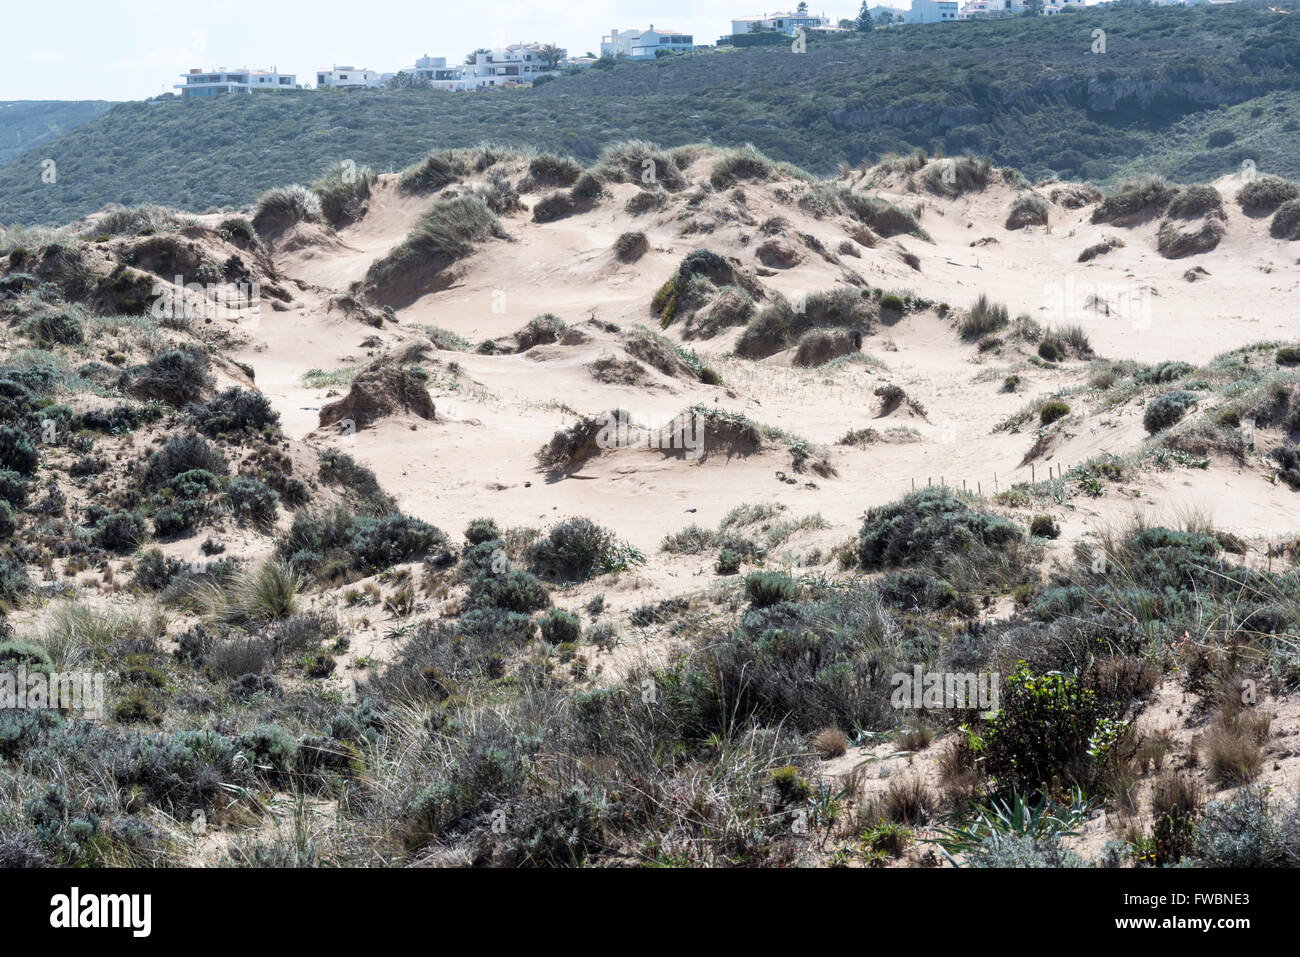 The sand dunes at the mouth of the River Aljezeur with a housing development on the horizon - Stock Image